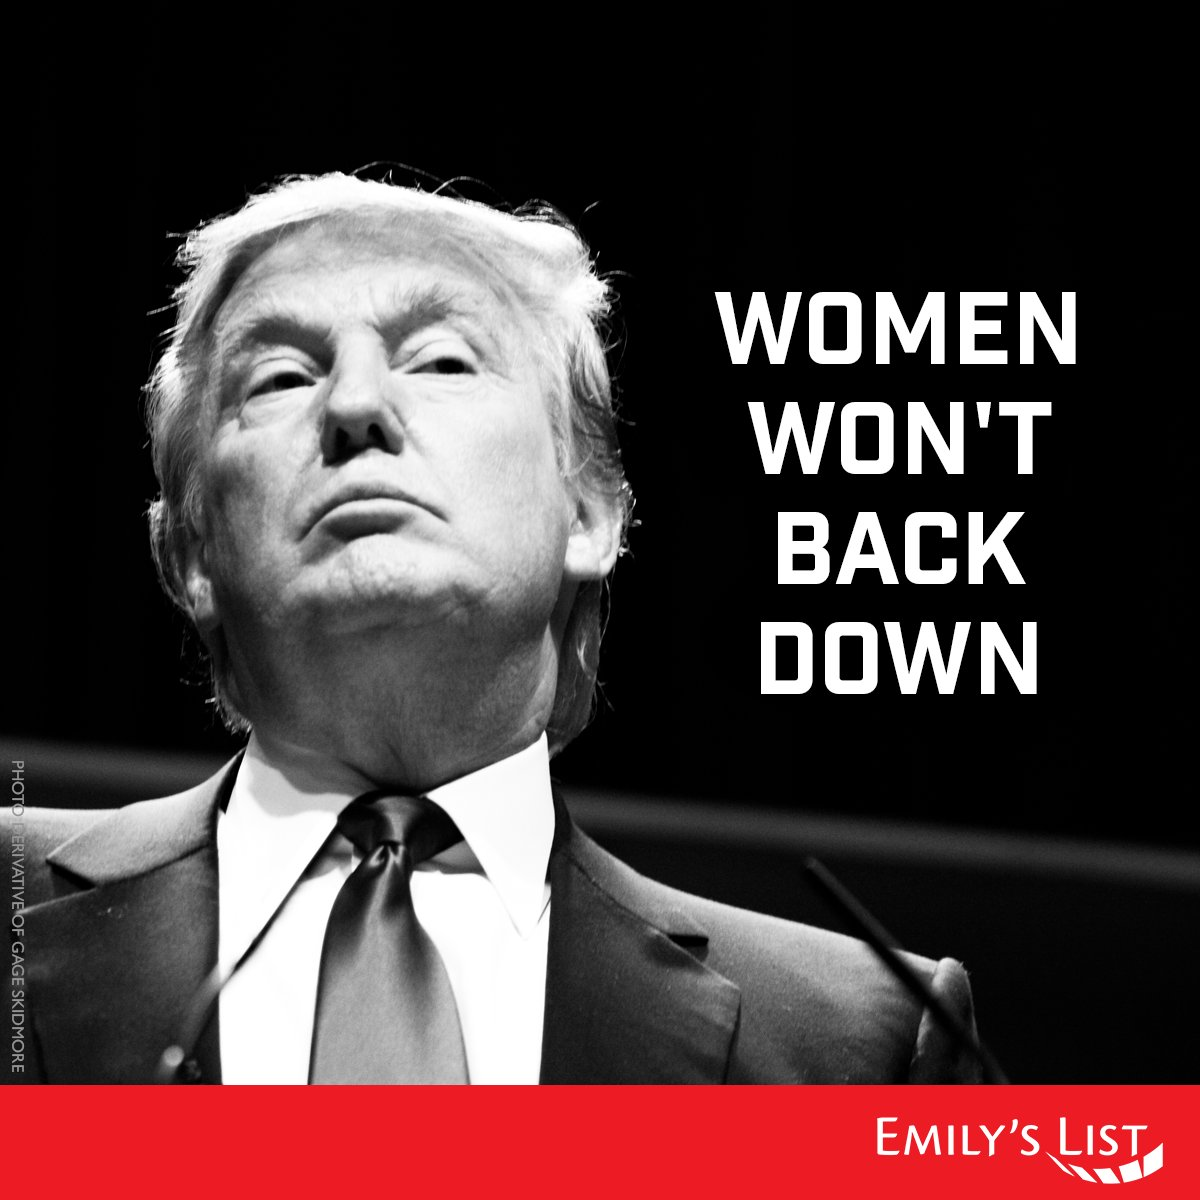 The House just passed an extreme abortion ban, which Trump says he will support. We have stopped these attacks before, and must do it again.